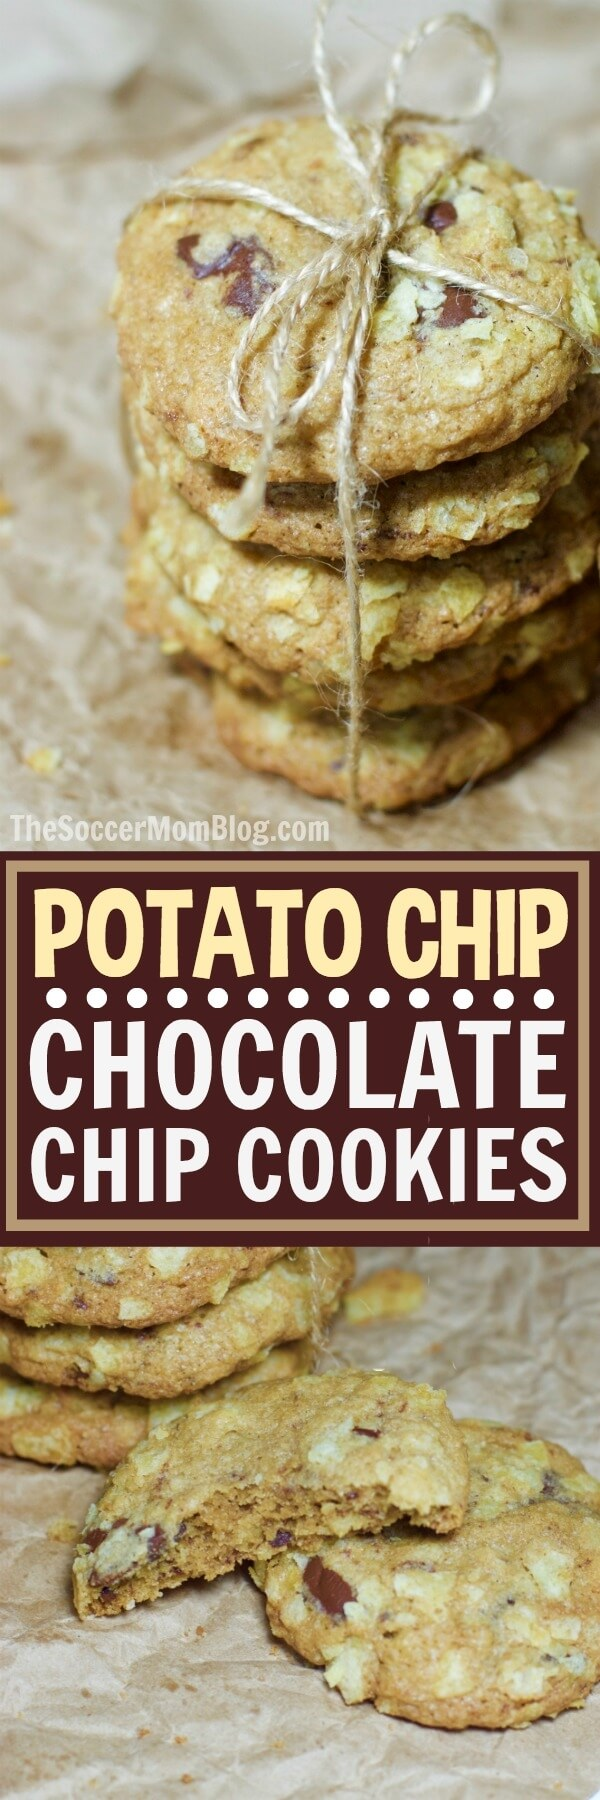 The perfect combination of sweet and salty in every bite — these Potato Chip Chocolate Chip Cookies are a WOW-worthy sweet treat for any occasion!